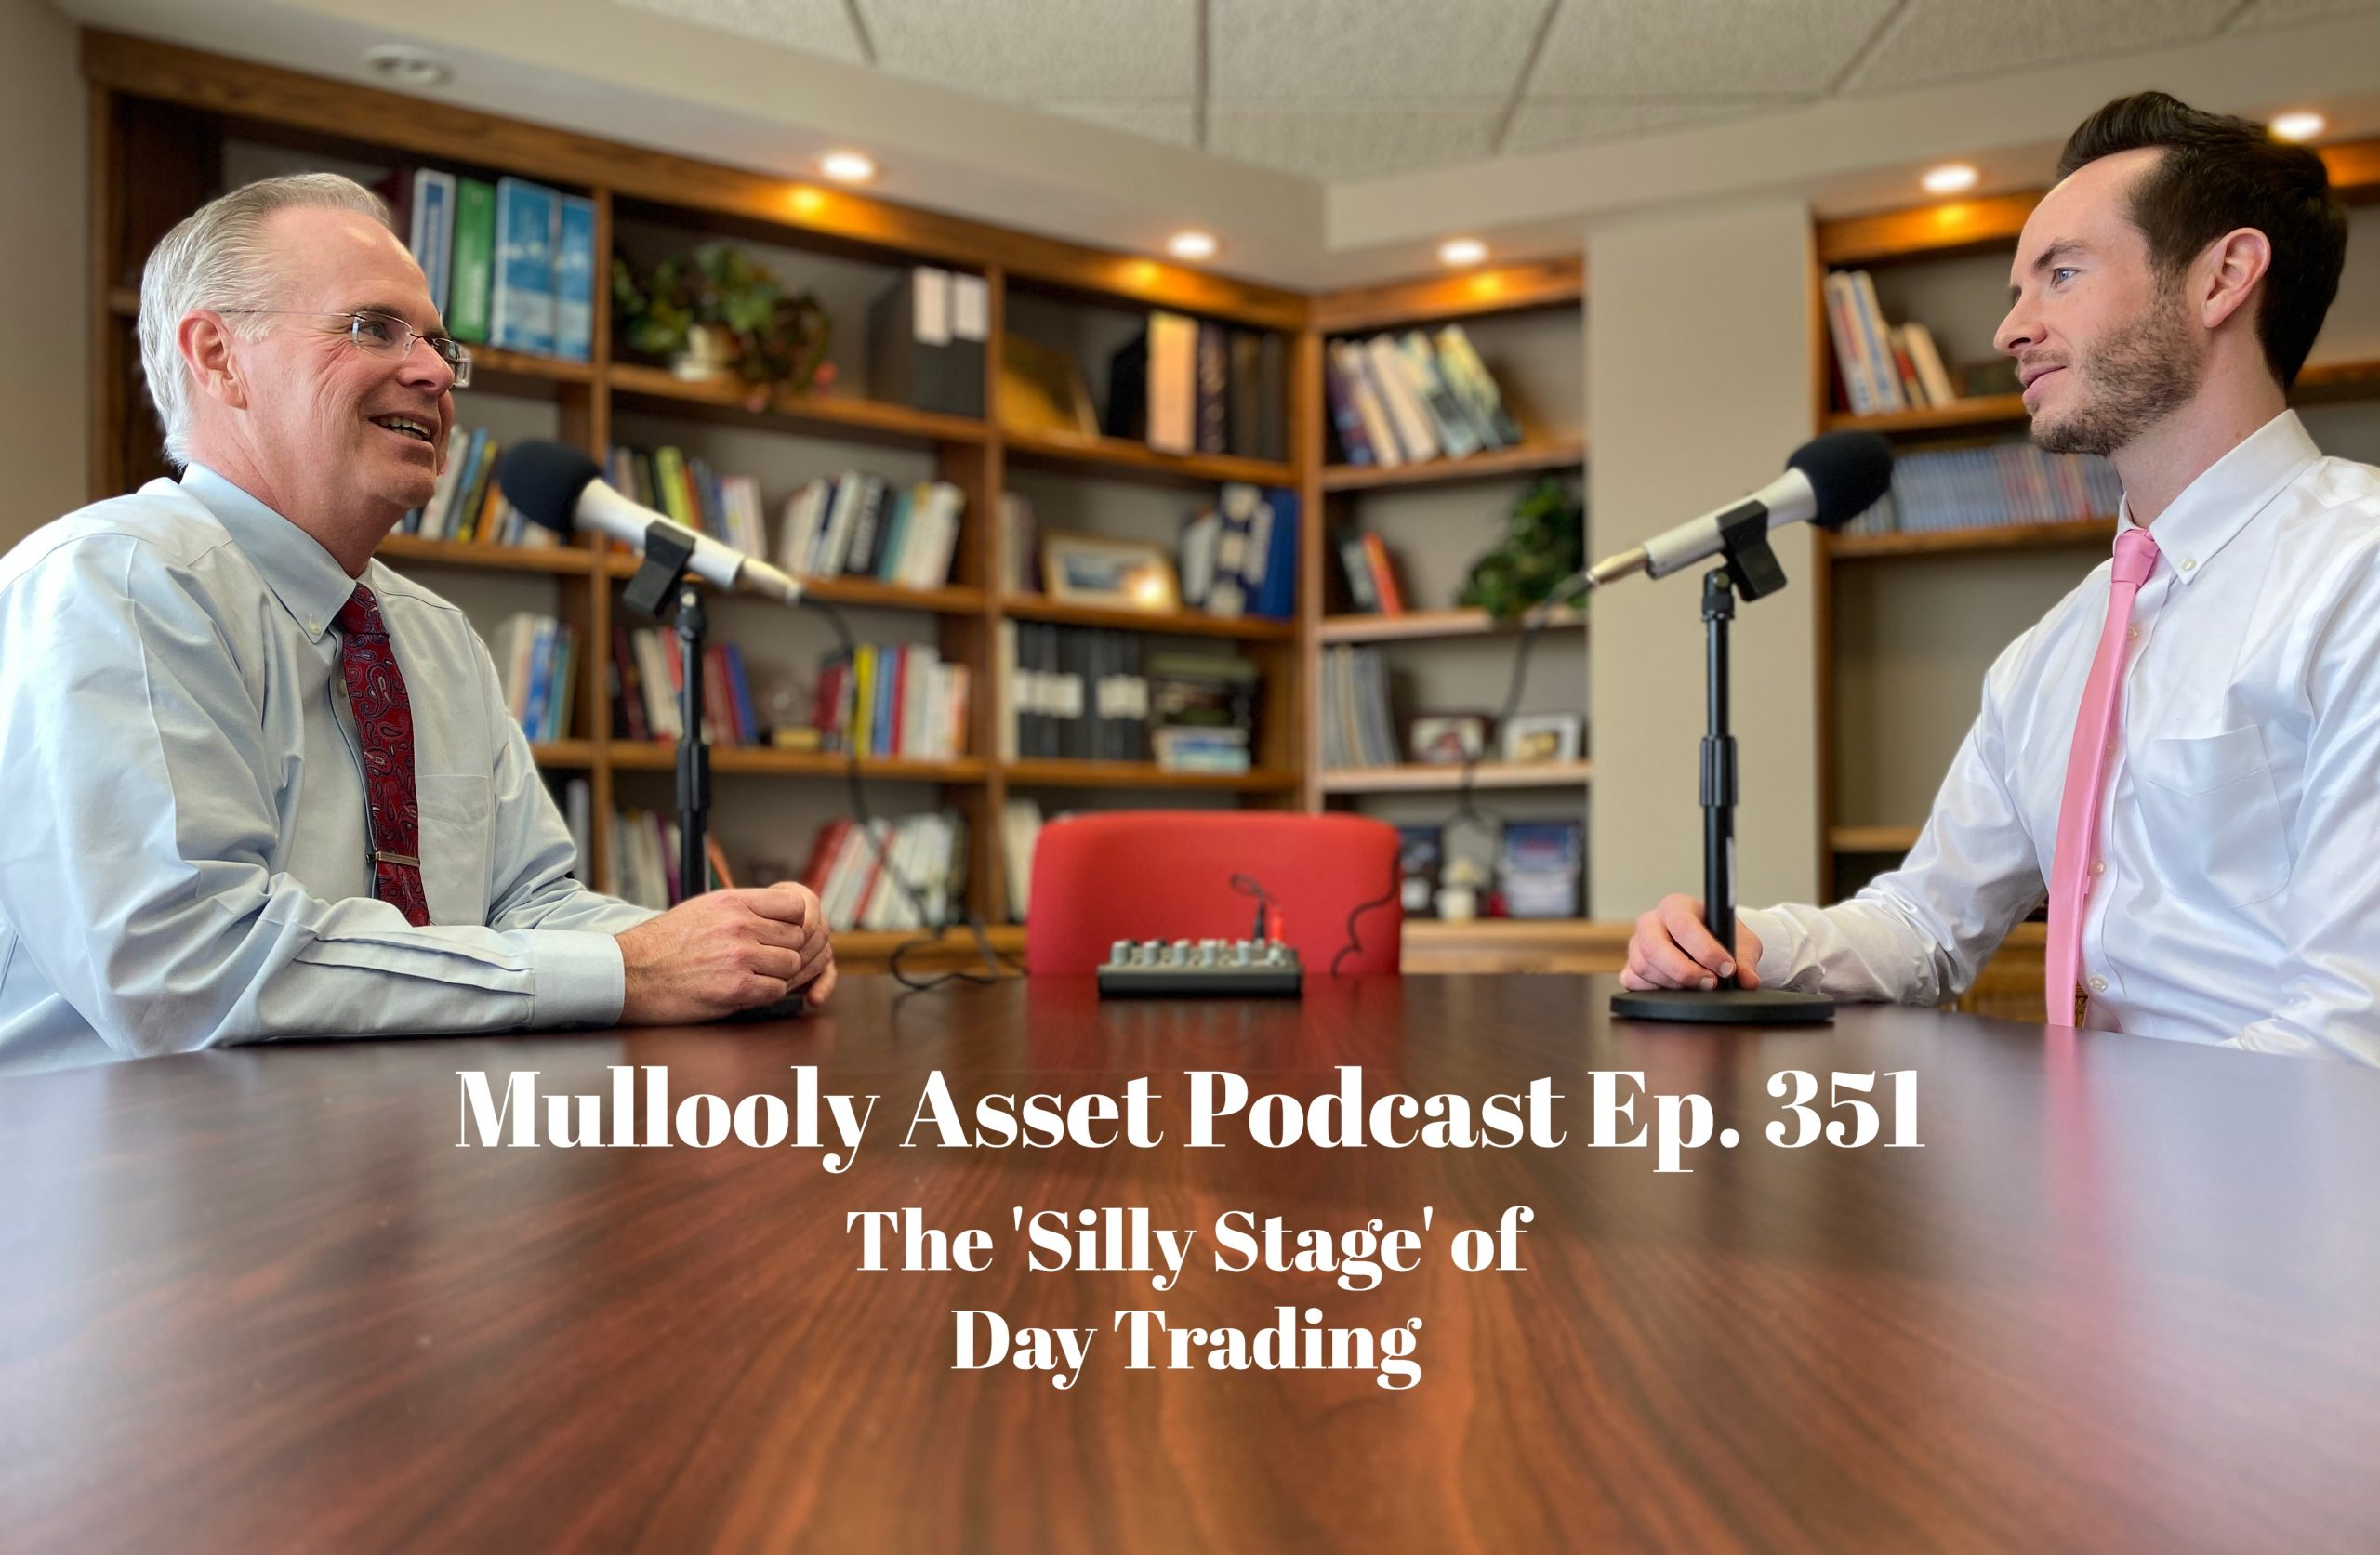 The Silly Stage of Day Trading